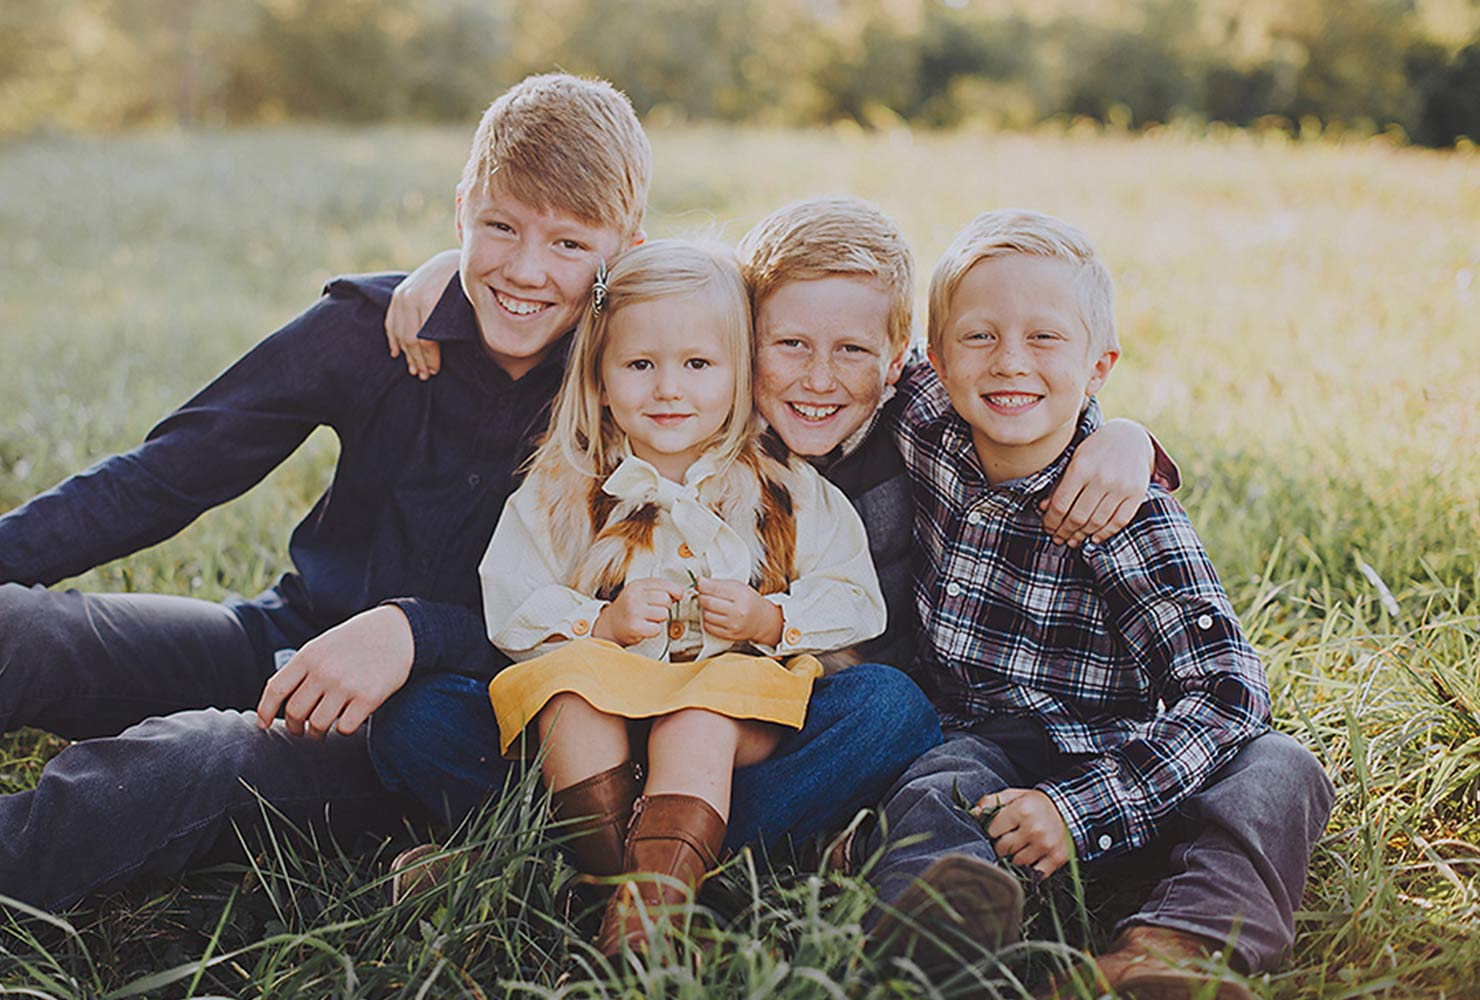 sibling photo ideas fall outfits grass